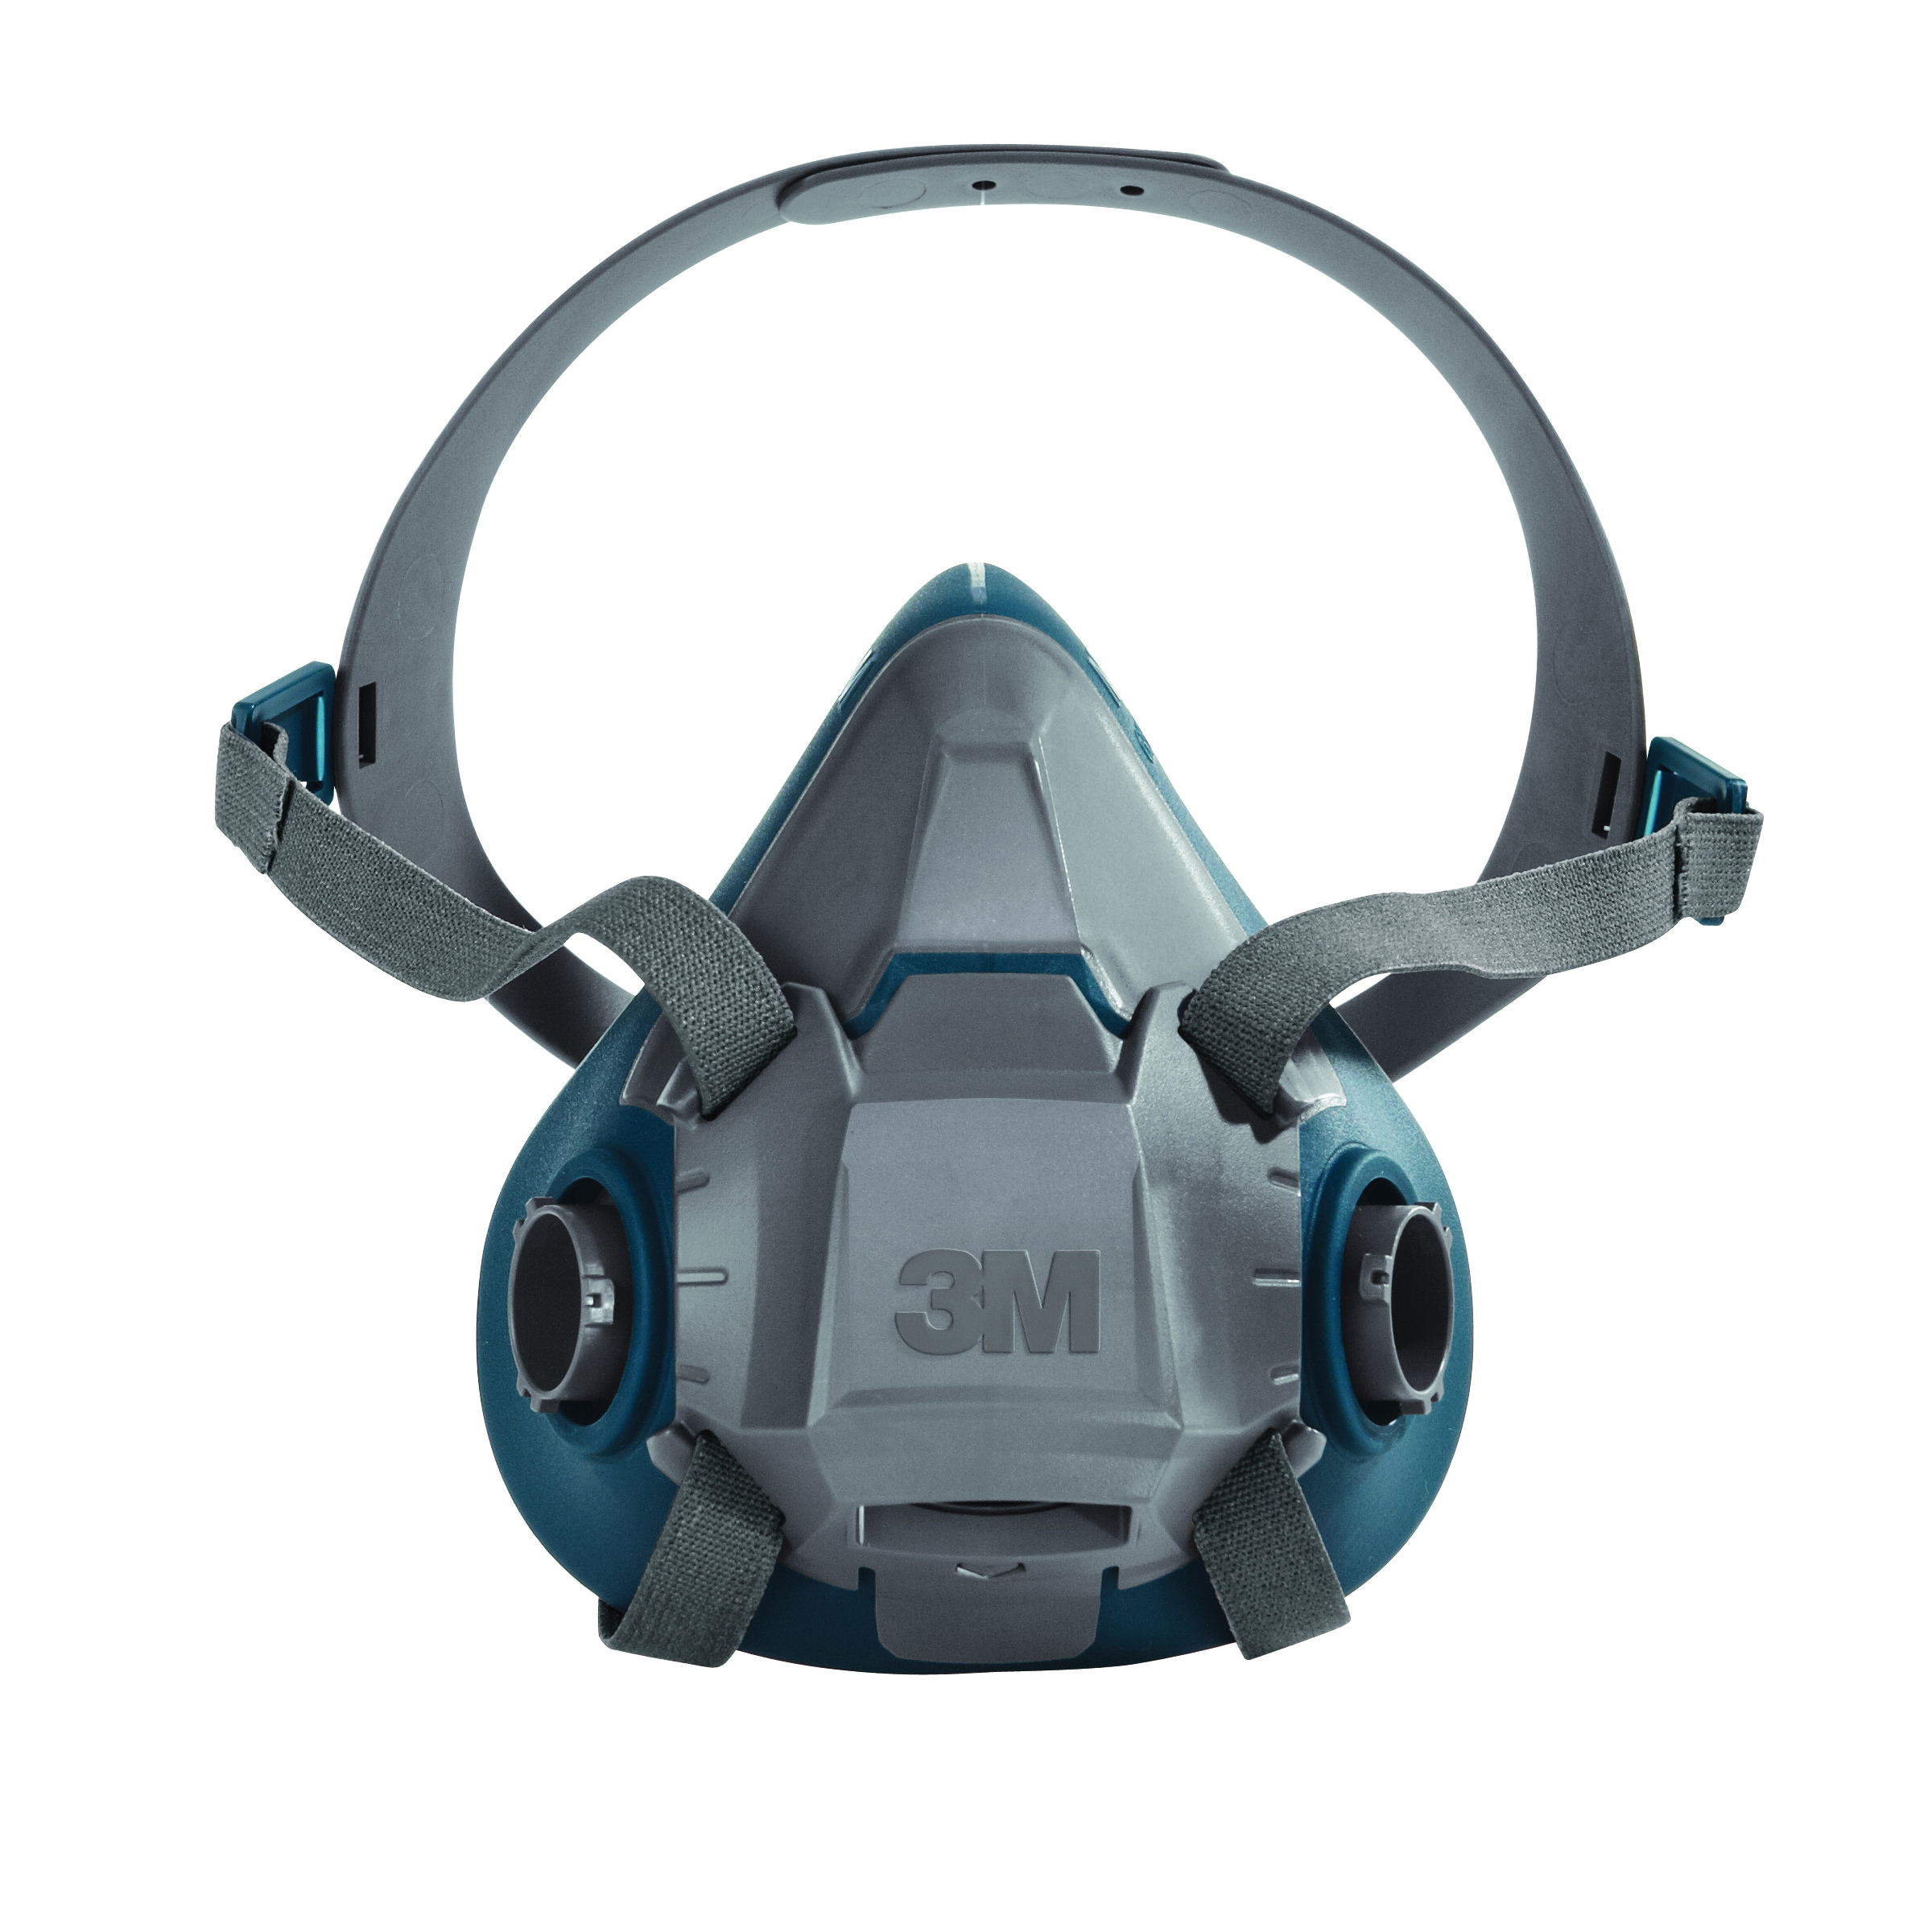 3M™ 051131-49489 6502 Probed Reusable Half Facepiece Respirator, M, 4-Point Suspension, Bayonet Connection, Resists: Gases and Vapors